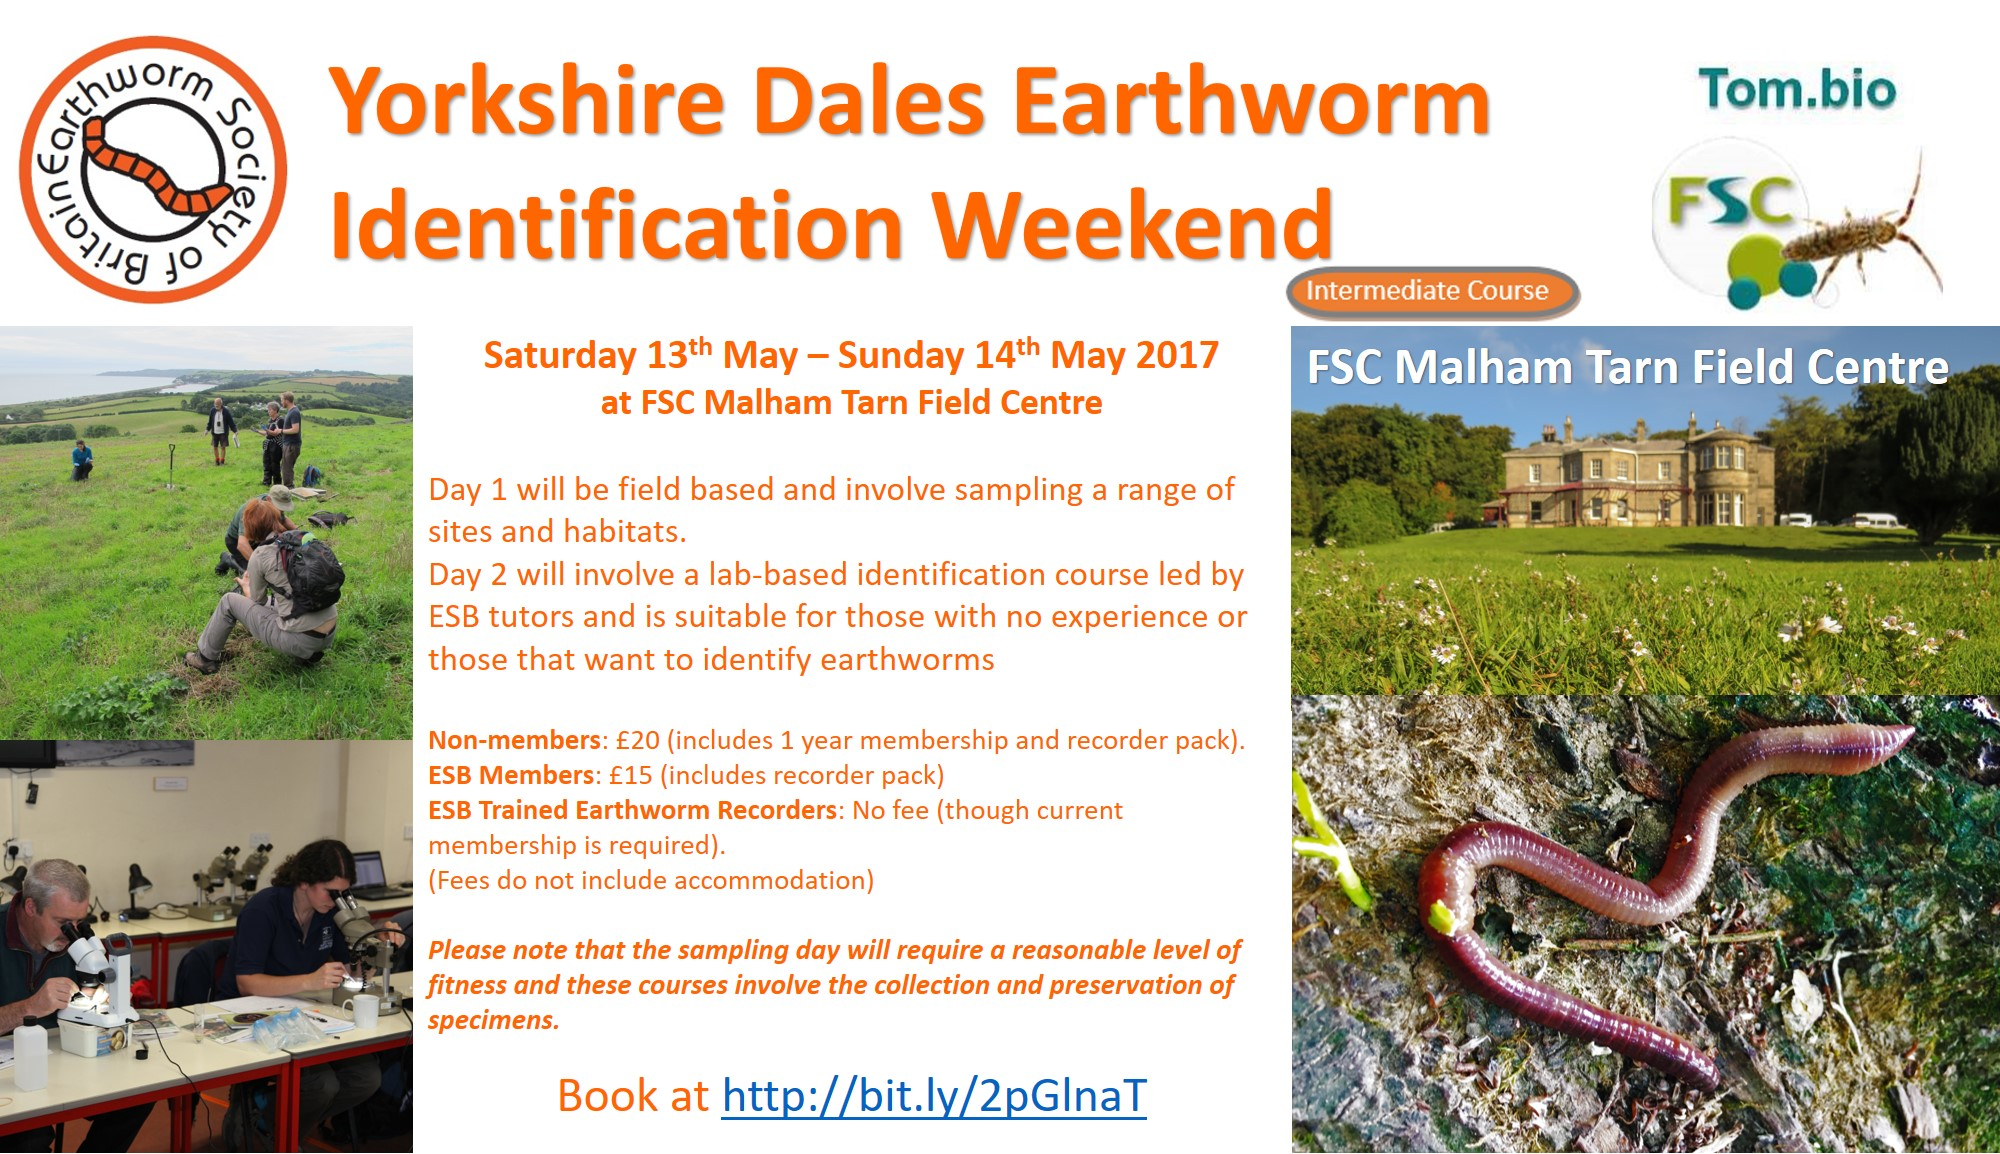 Yorkshire Dales Earthworm ID Weekend 2017